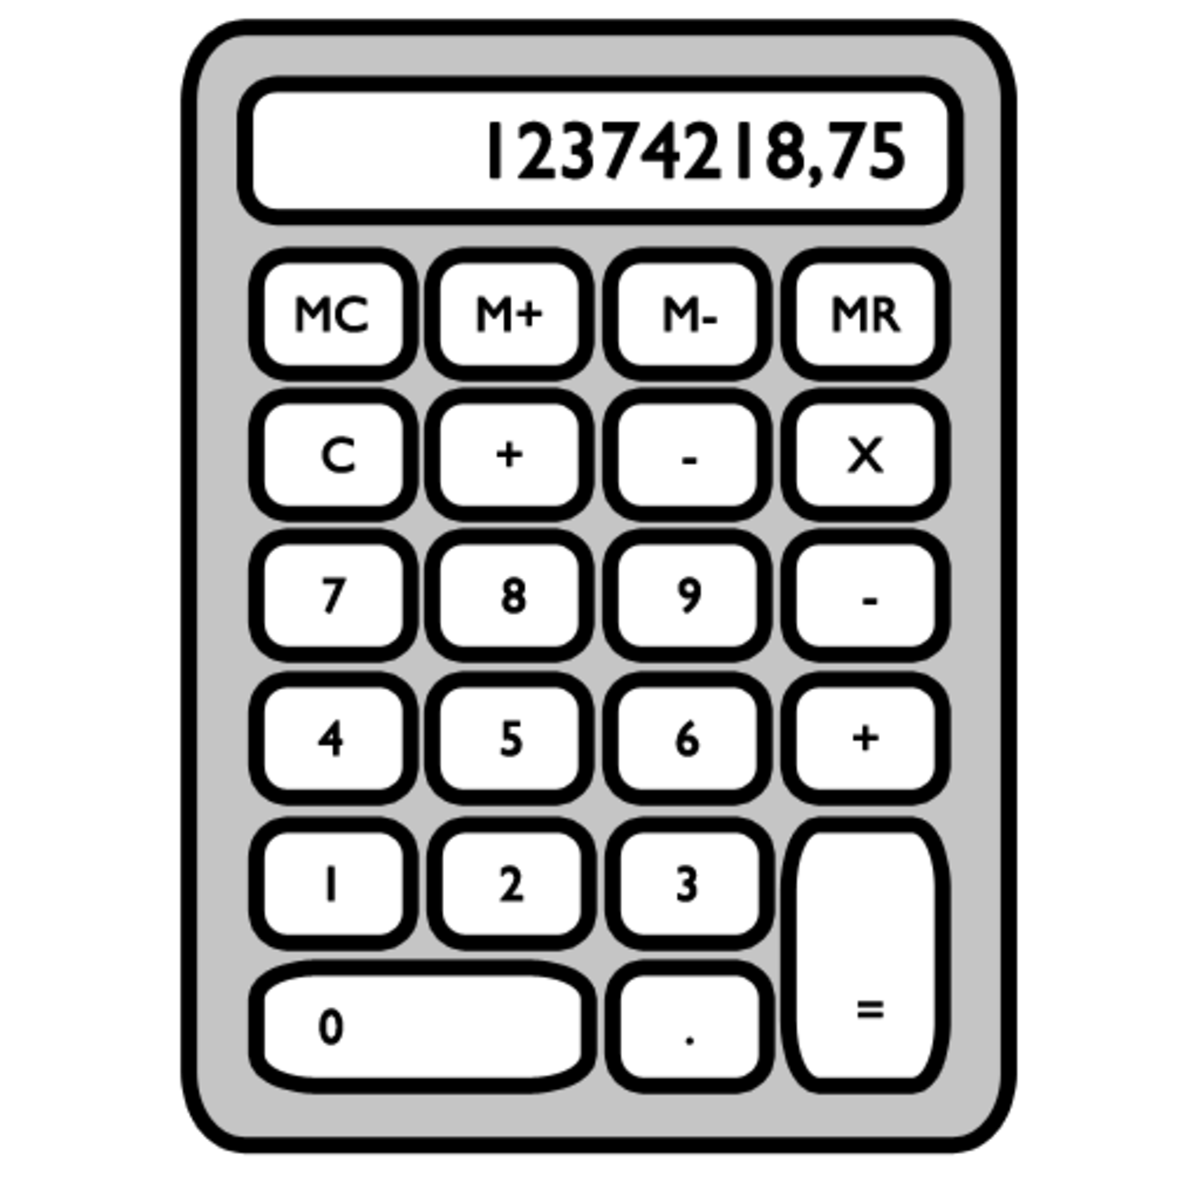 -benefits-and-disadvantages-of-calculator-in-school